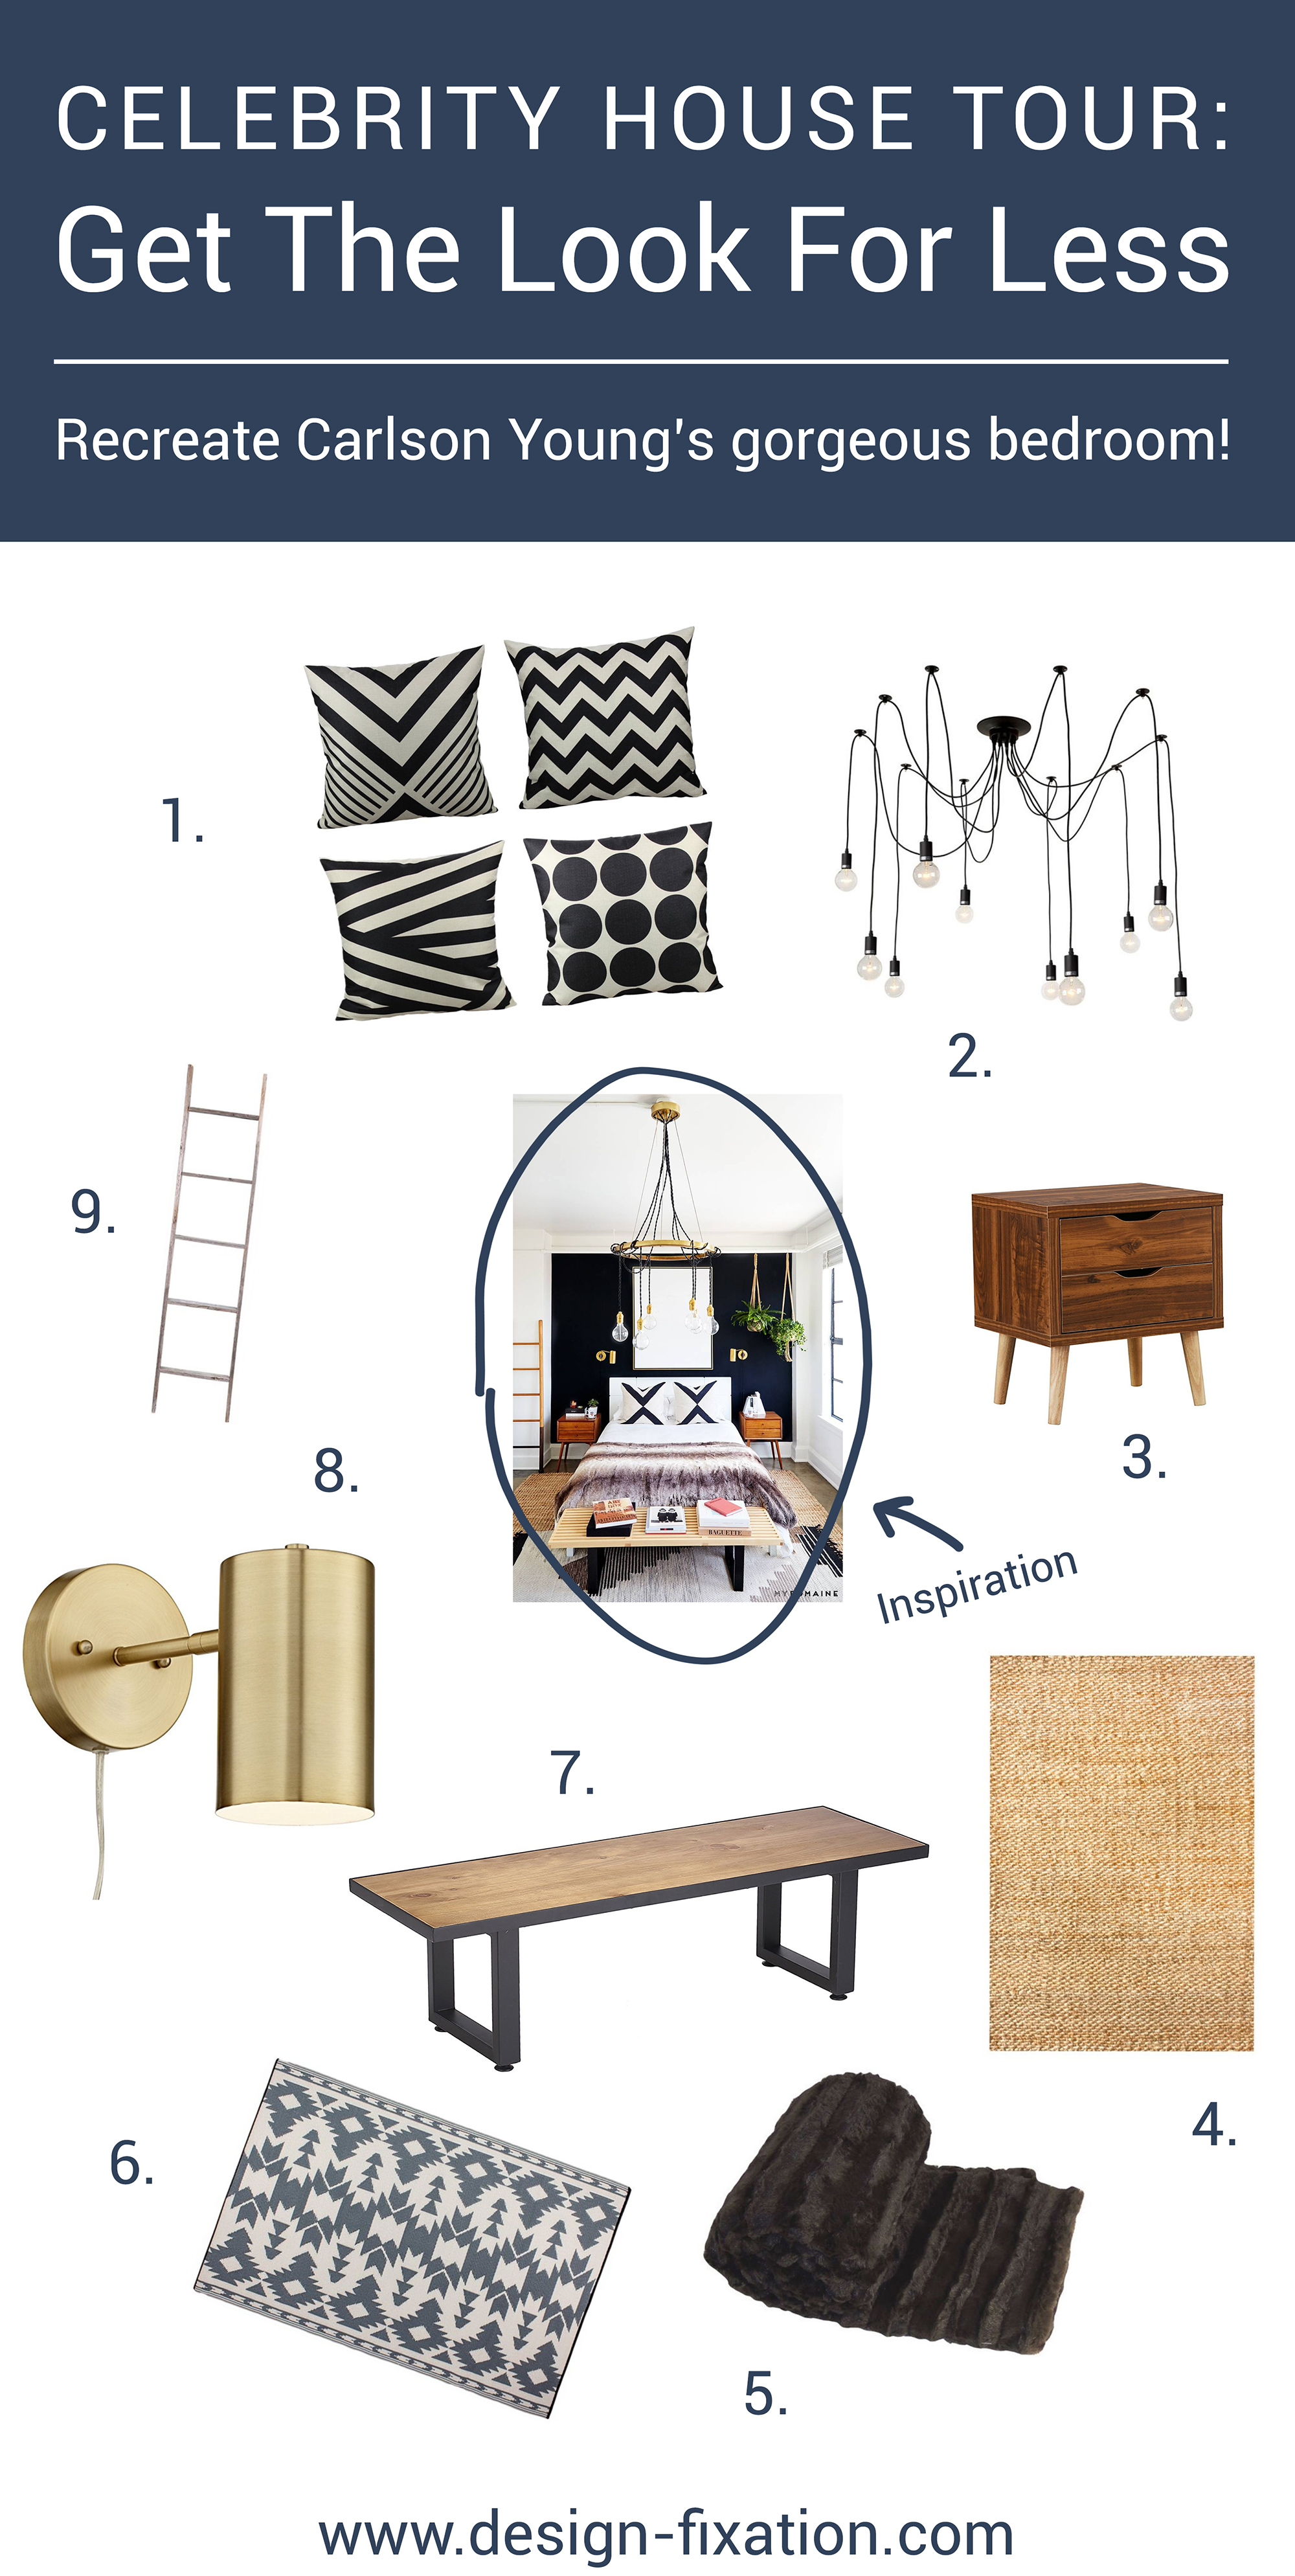 Look For Less Home Decor from design-fixation.com